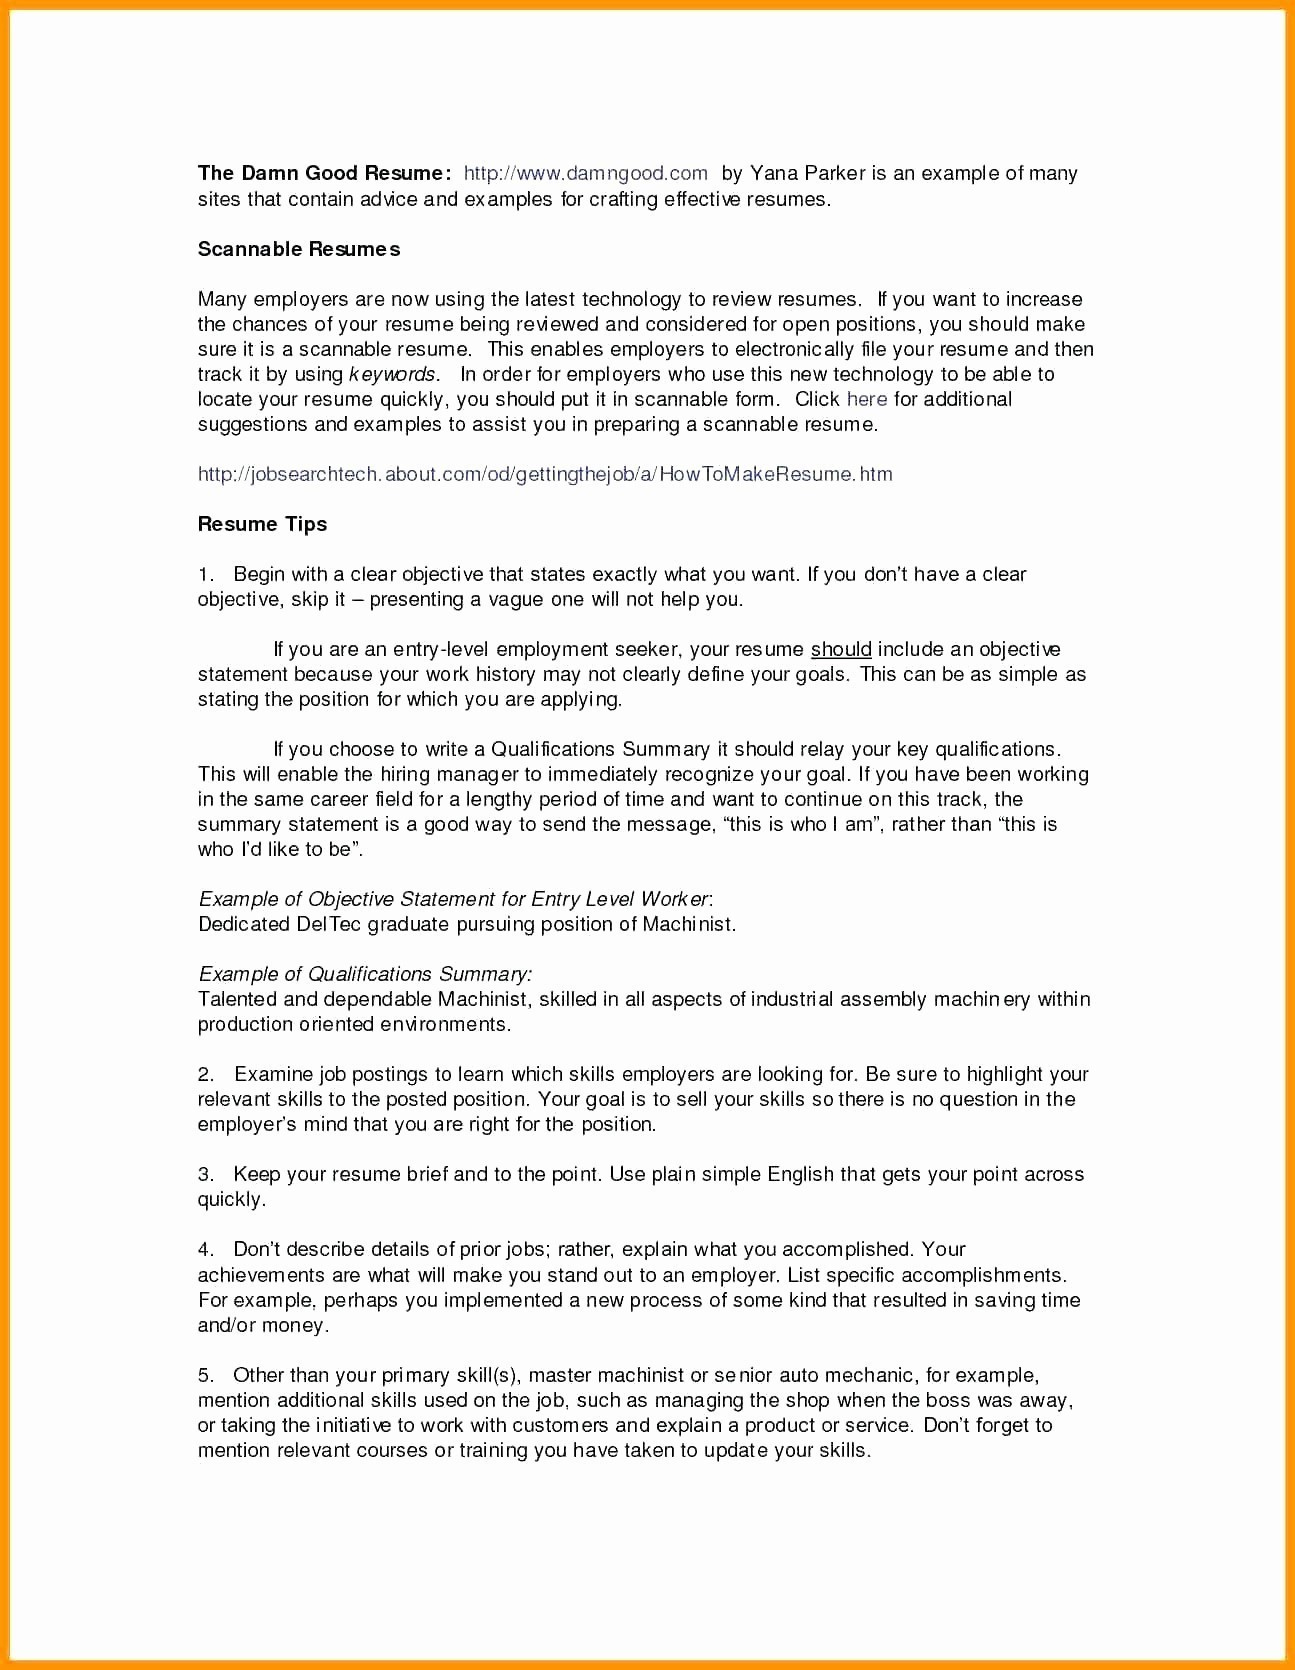 School Counselor Resume Template - Guidance Counselor Cover Letter New Middle School Guidance Counselor